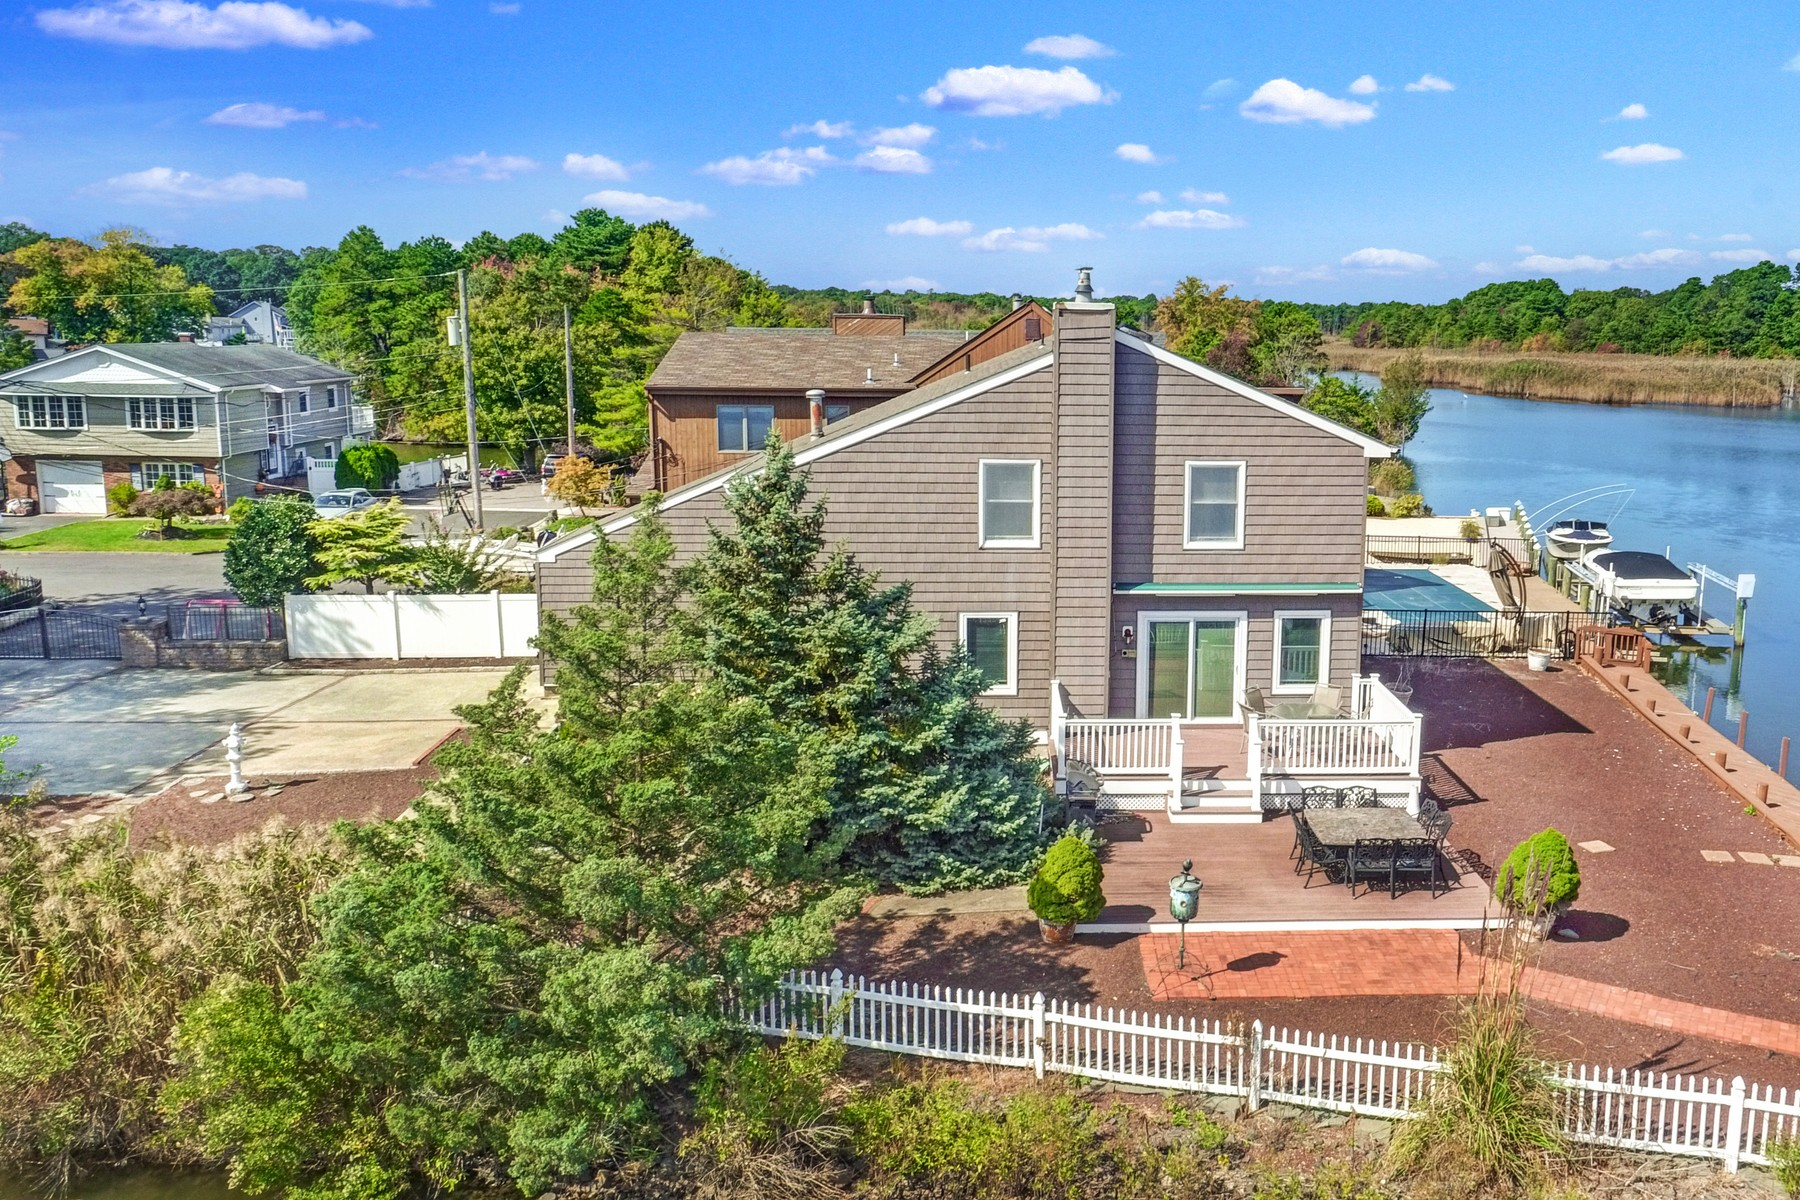 Single Family Homes for Sale at Waterfront Hideaway 61 Lenape Trail Brick, New Jersey 08724 United States